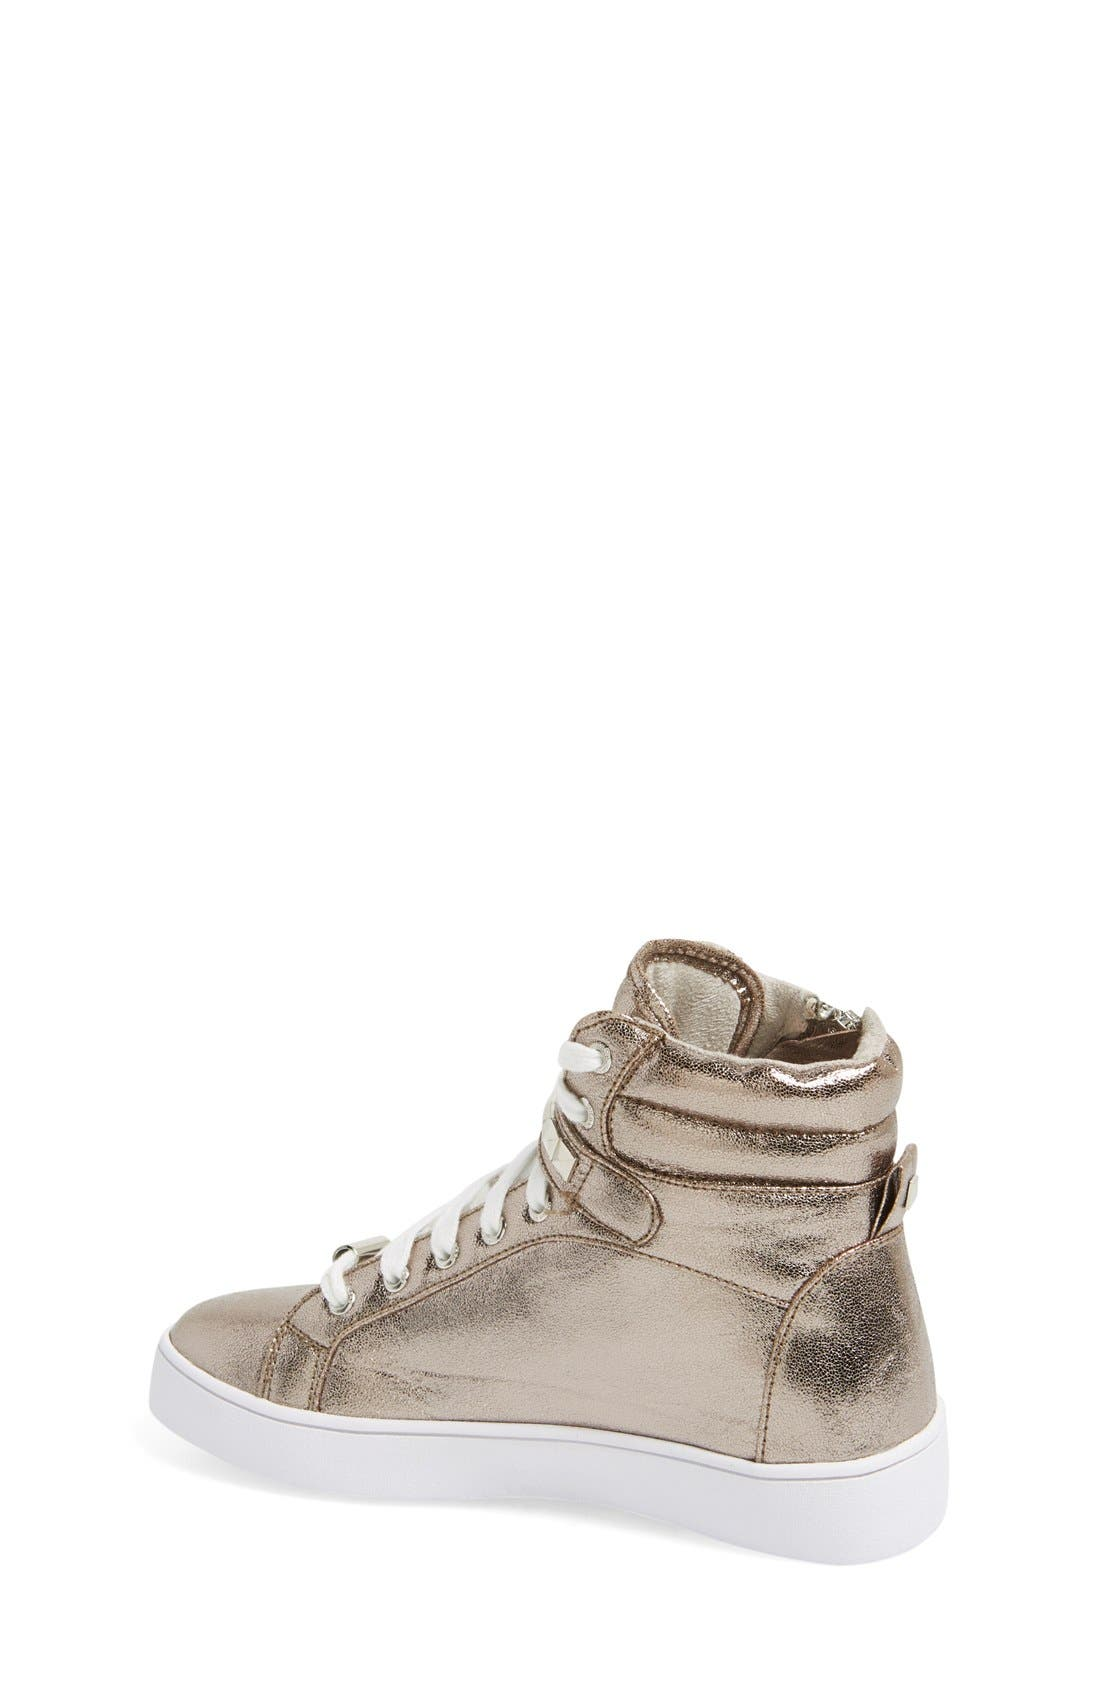 'Ivy Rory' High Top Sneaker,                             Alternate thumbnail 7, color,